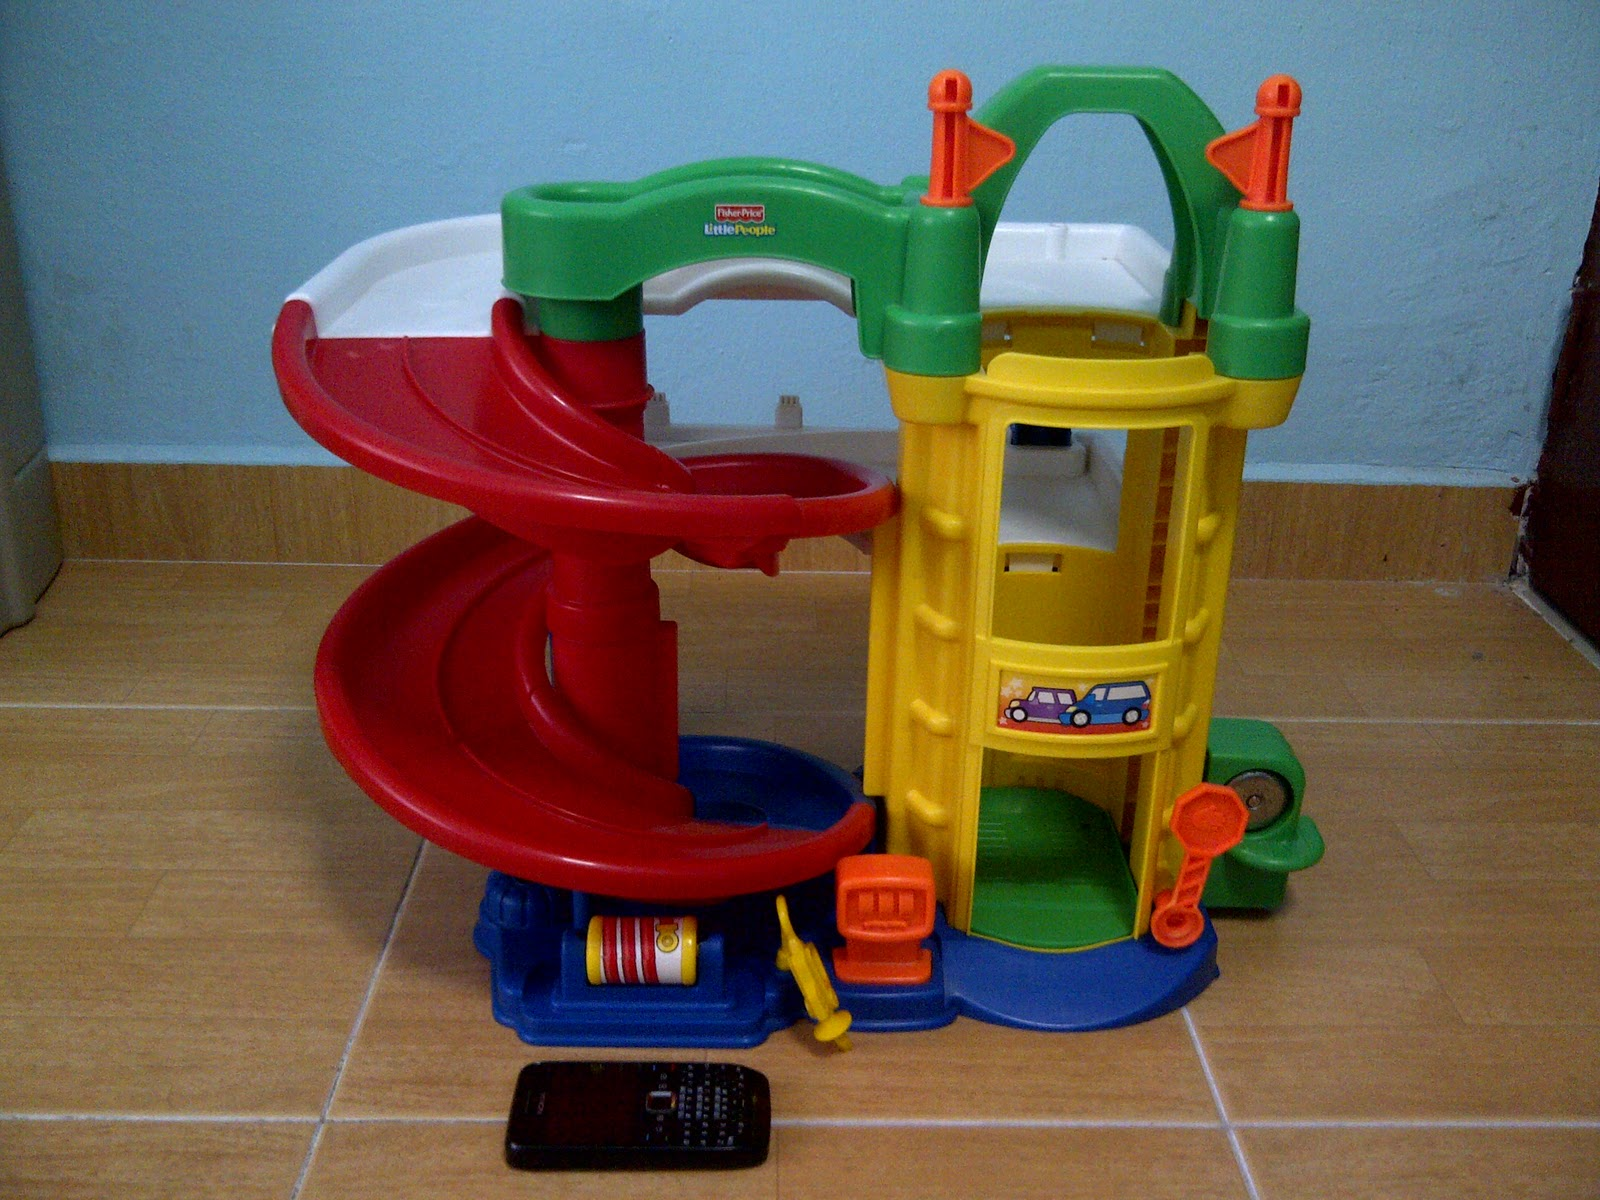 Special toys shop fisher price little people garage - Fisher price little people racin ramps garage ...